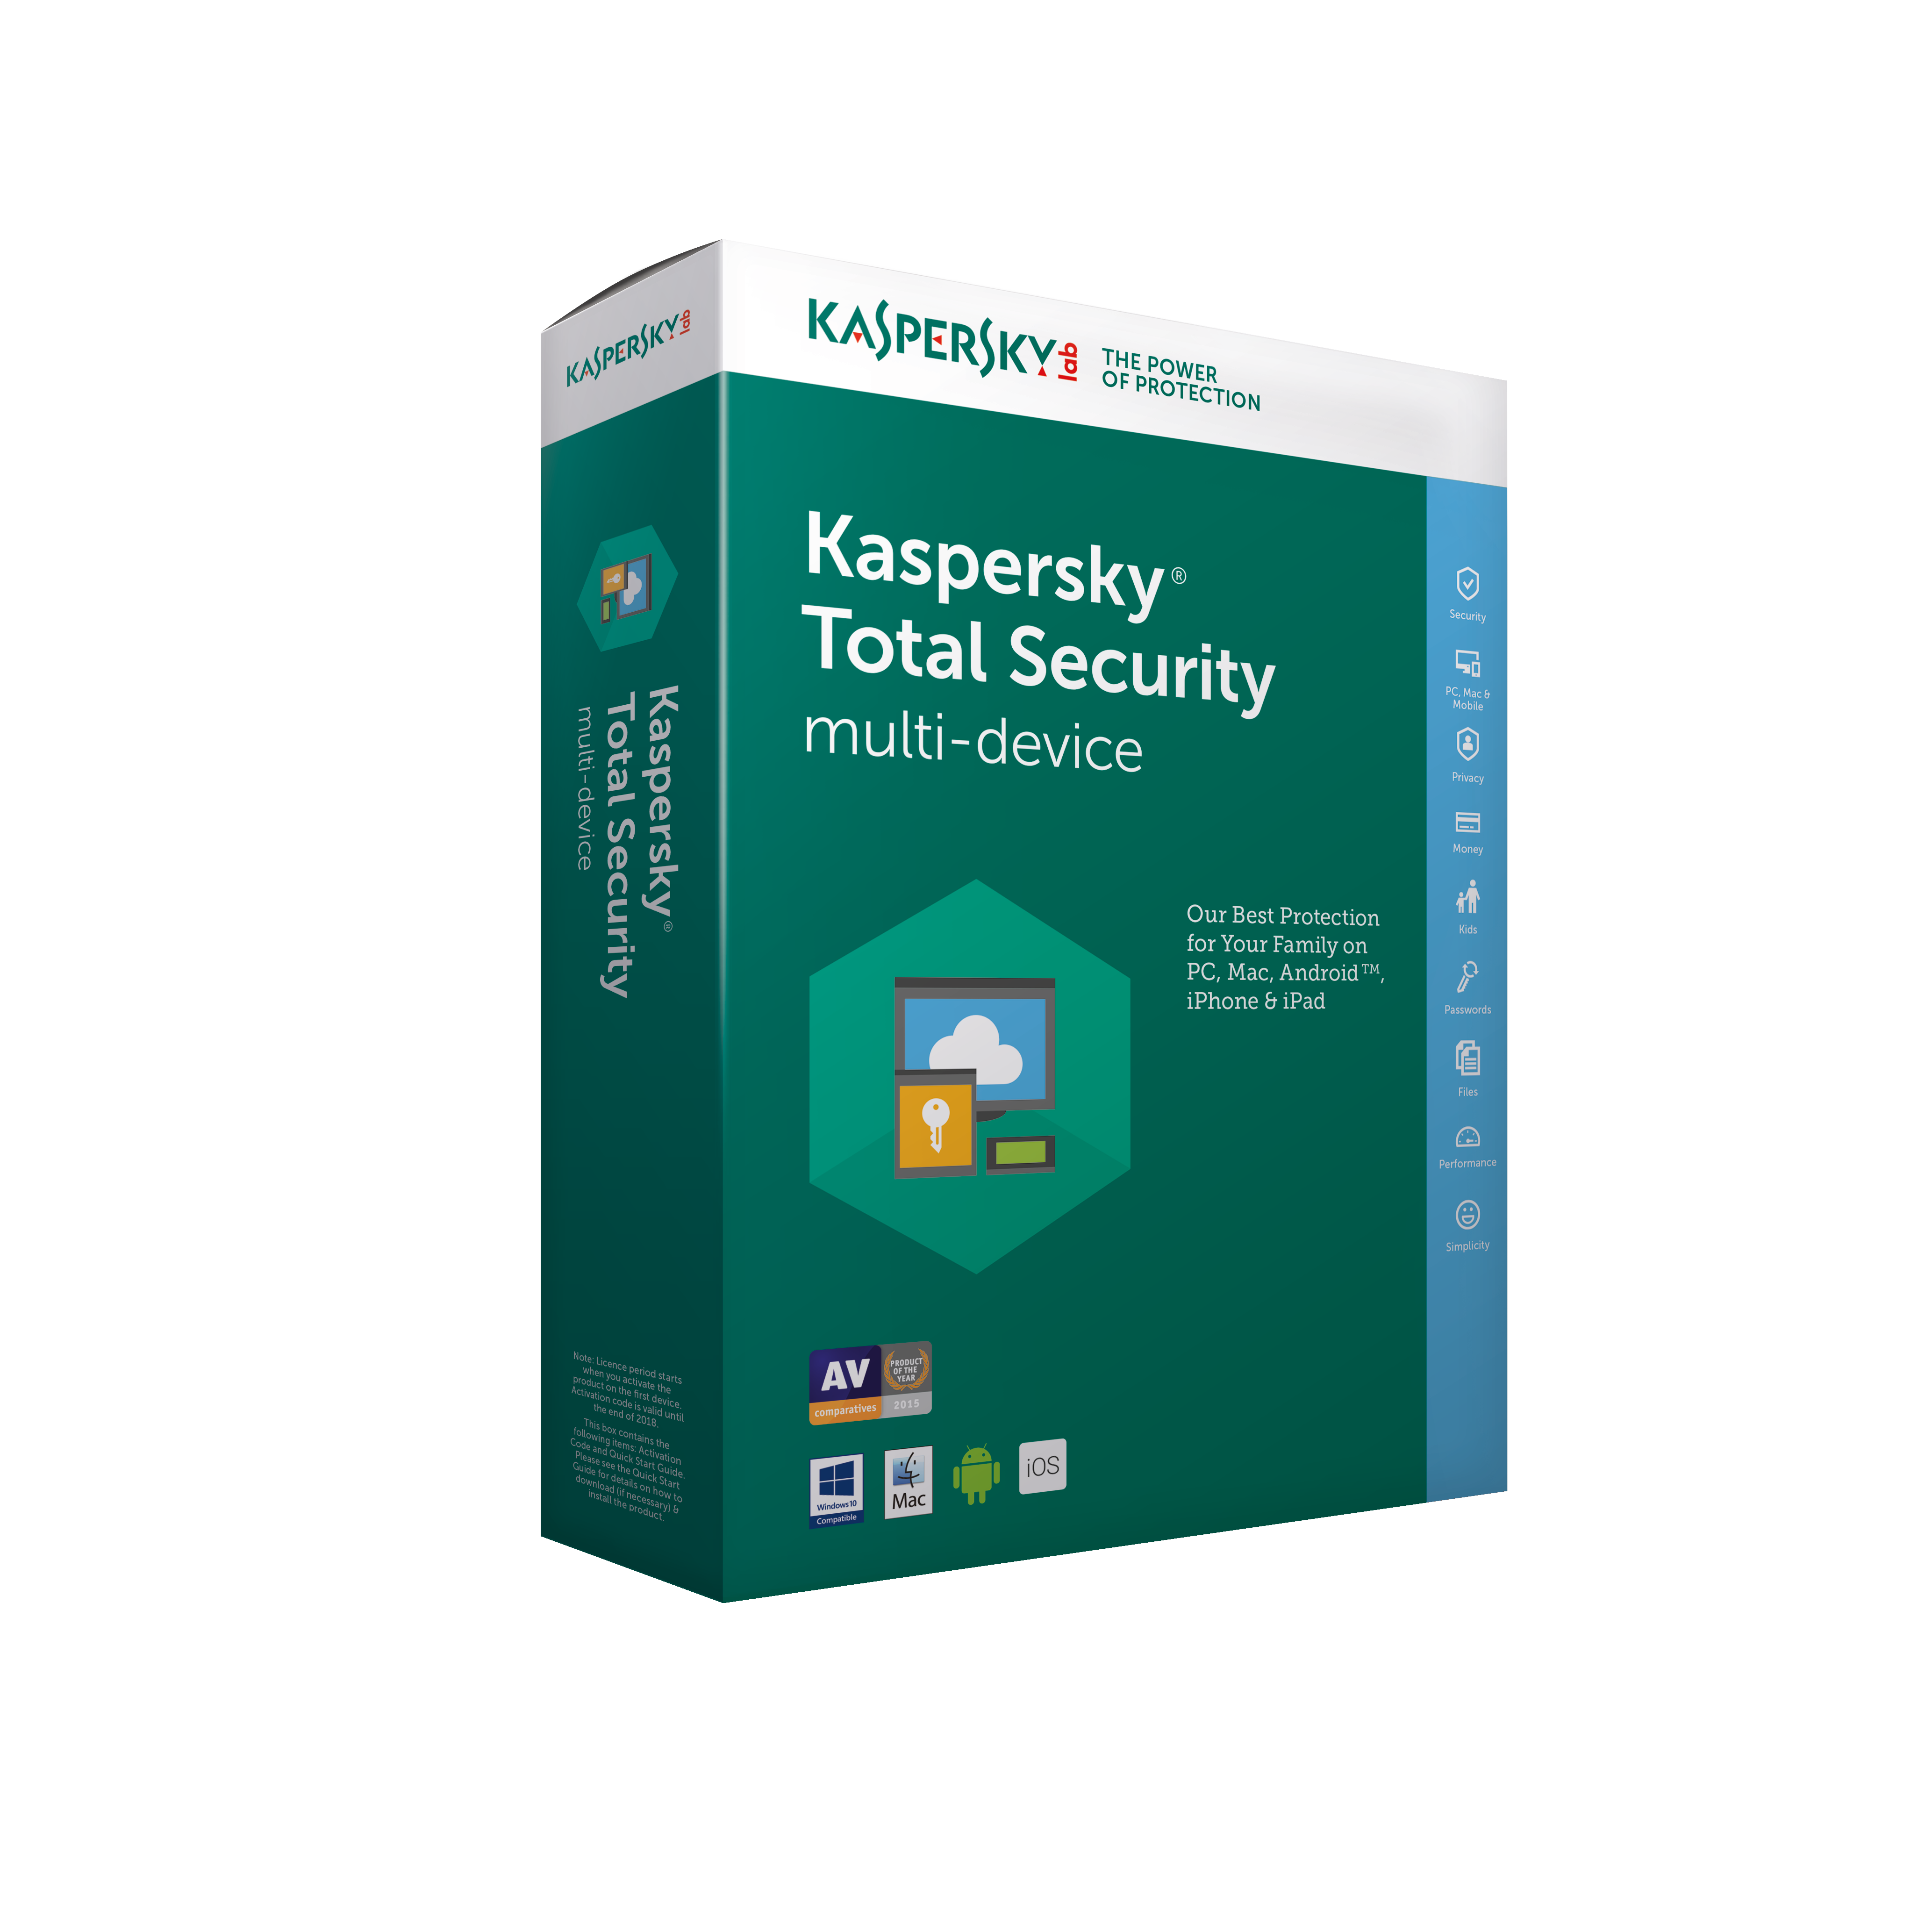 Kaspersky Total Security - Multi-Device European Edition. 4-Device 2 year Renewal License Pack